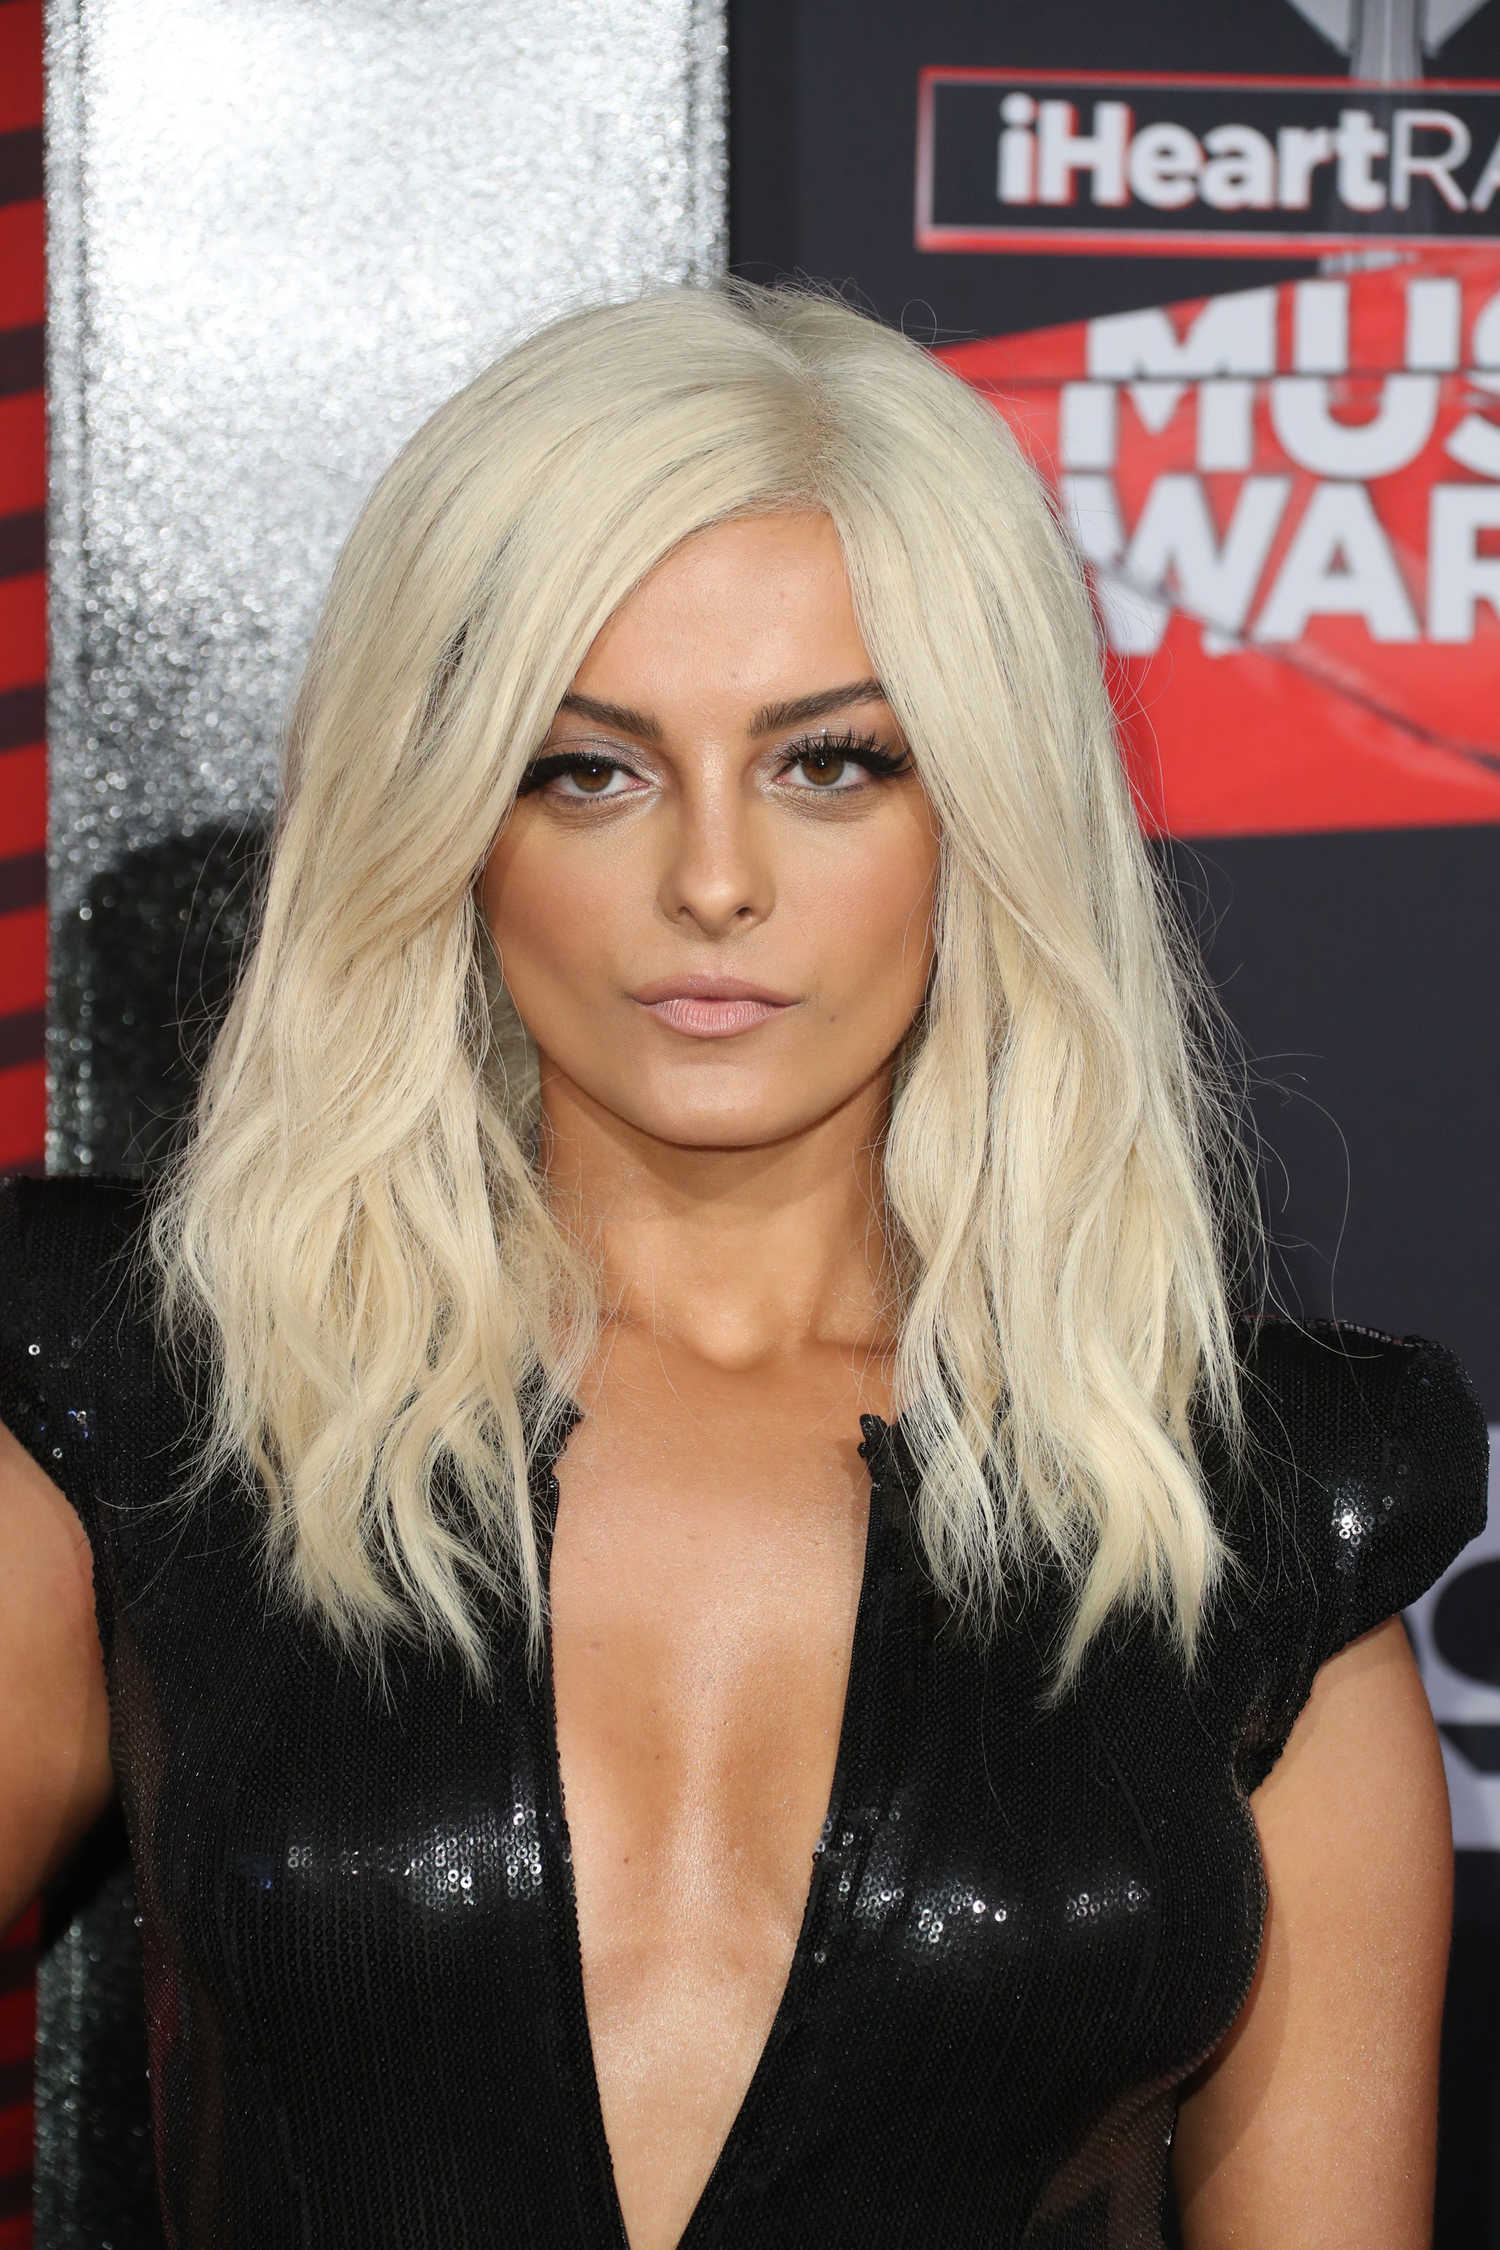 Bebe Rexha nudes (69 photo), hacked Sideboobs, Snapchat, lingerie 2015